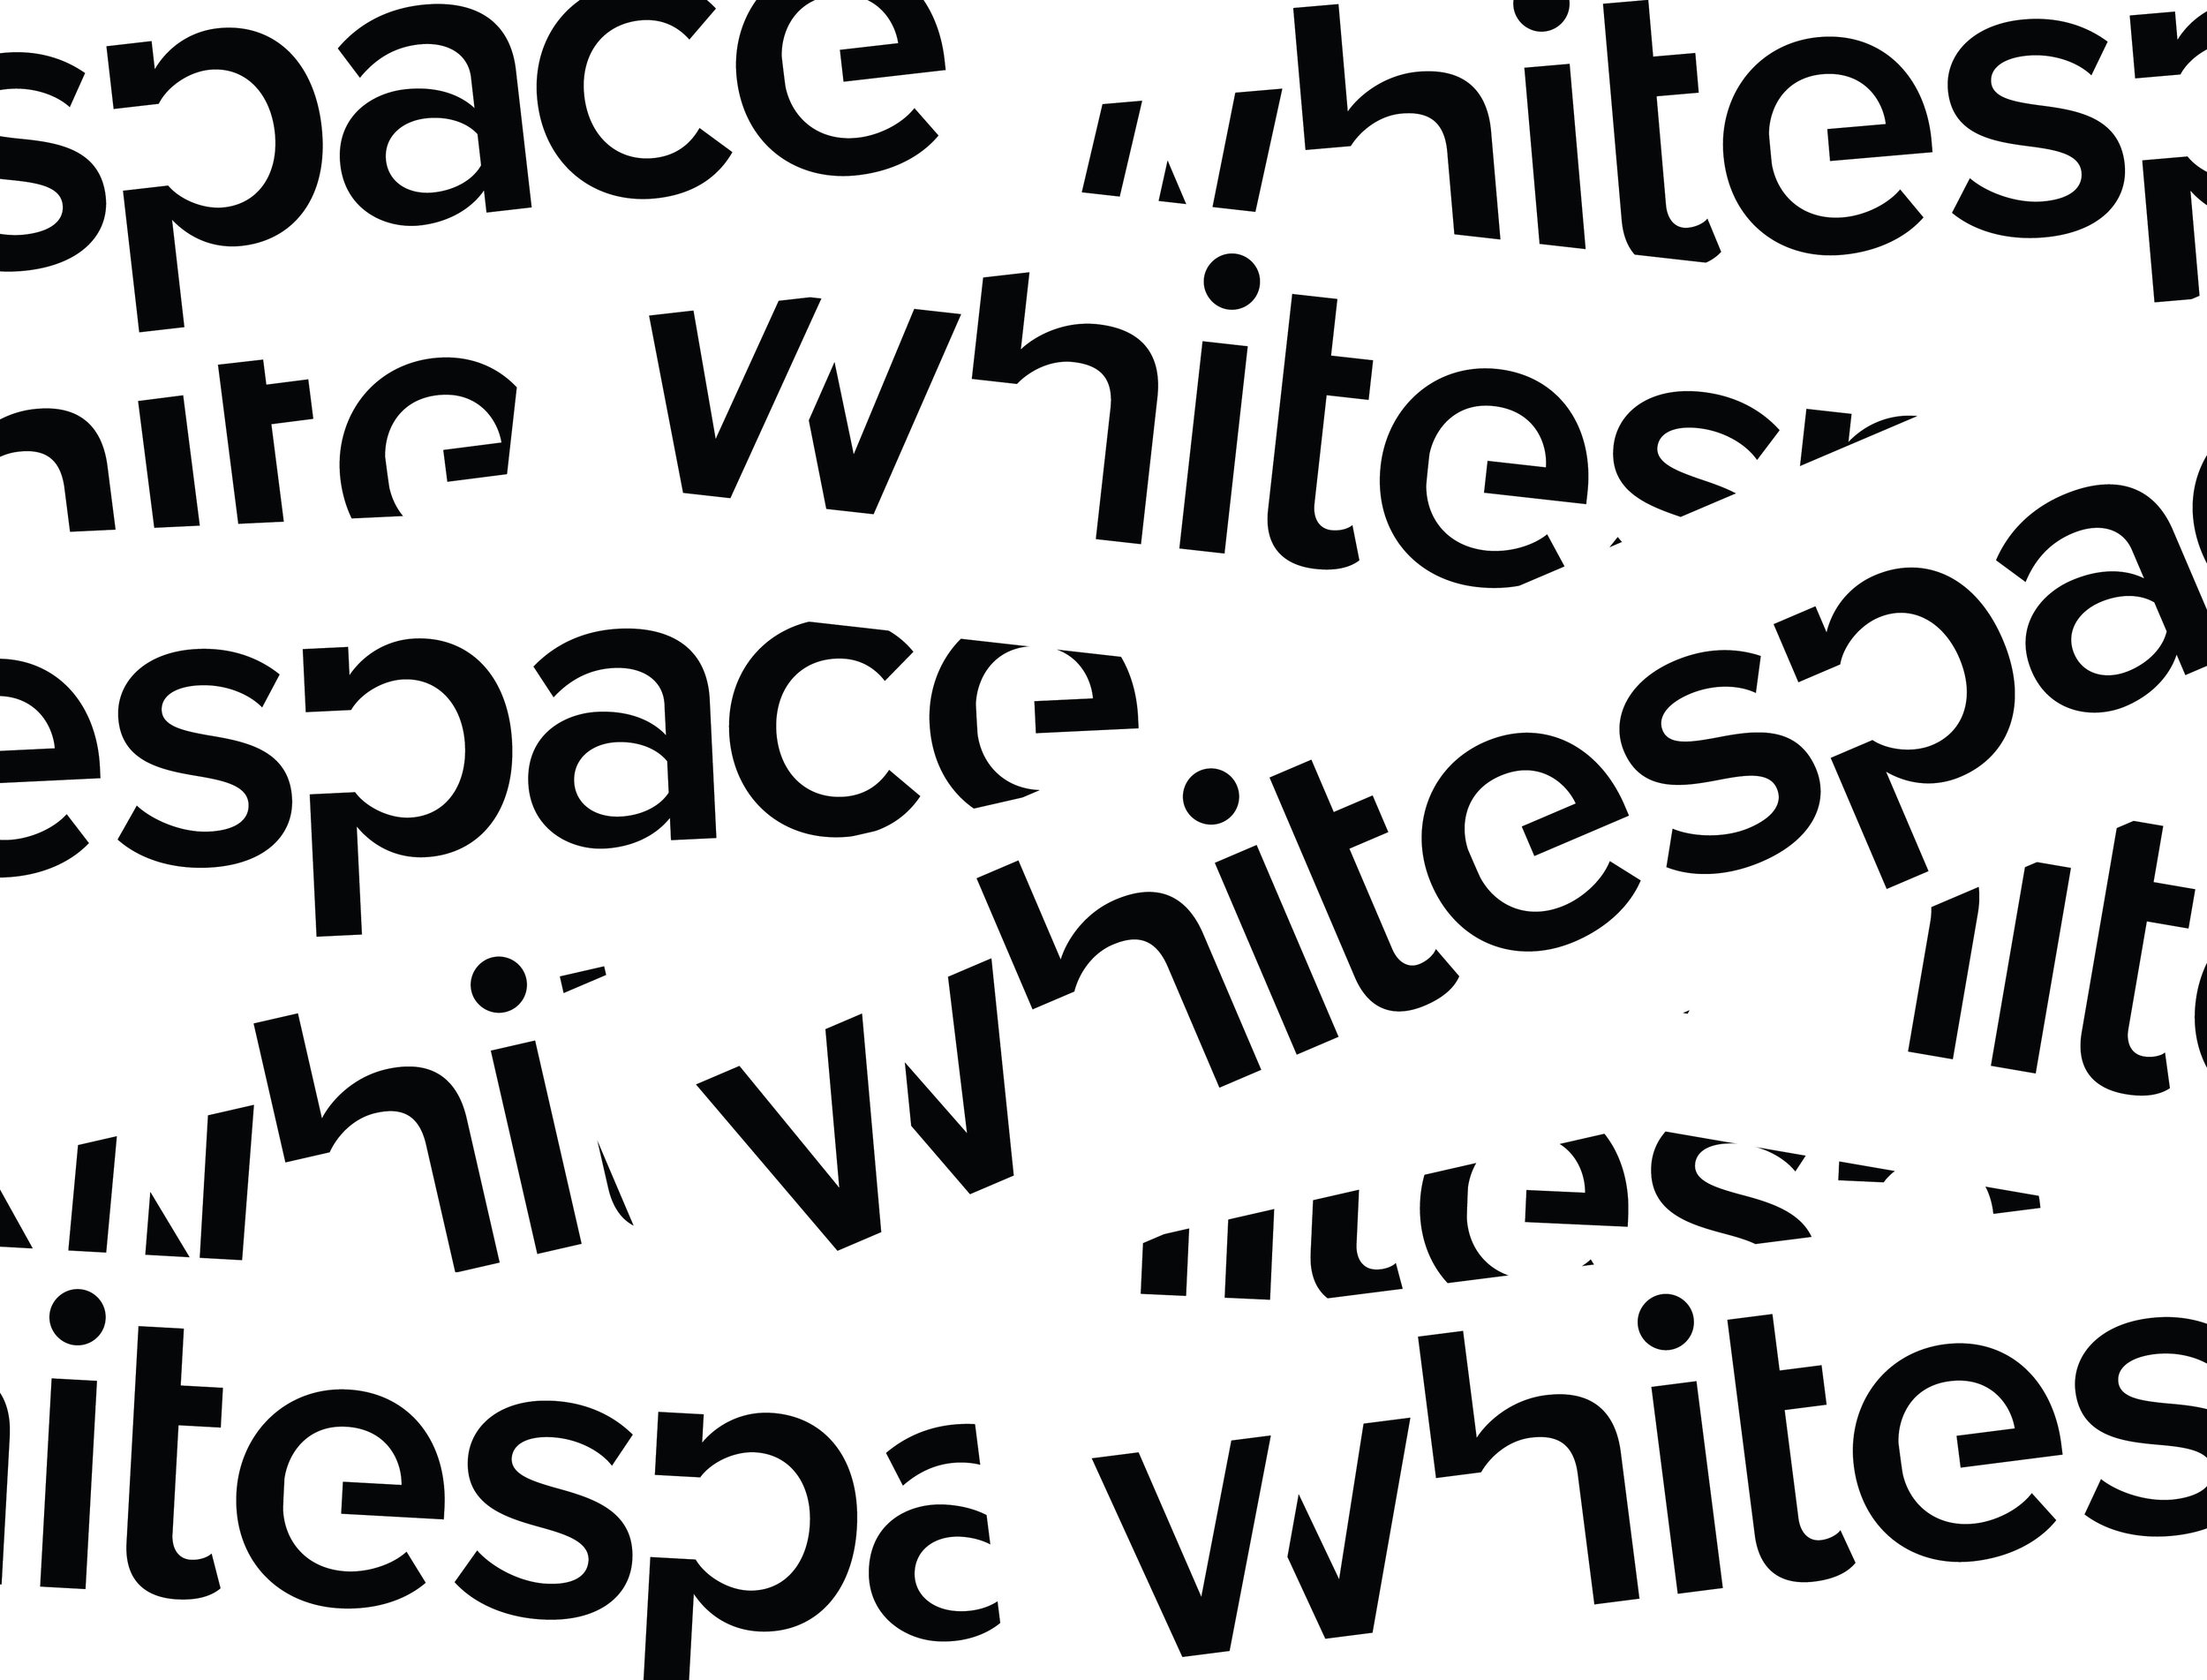 whitespace-brand-strategy-creative-studio-collage-journal-introduction